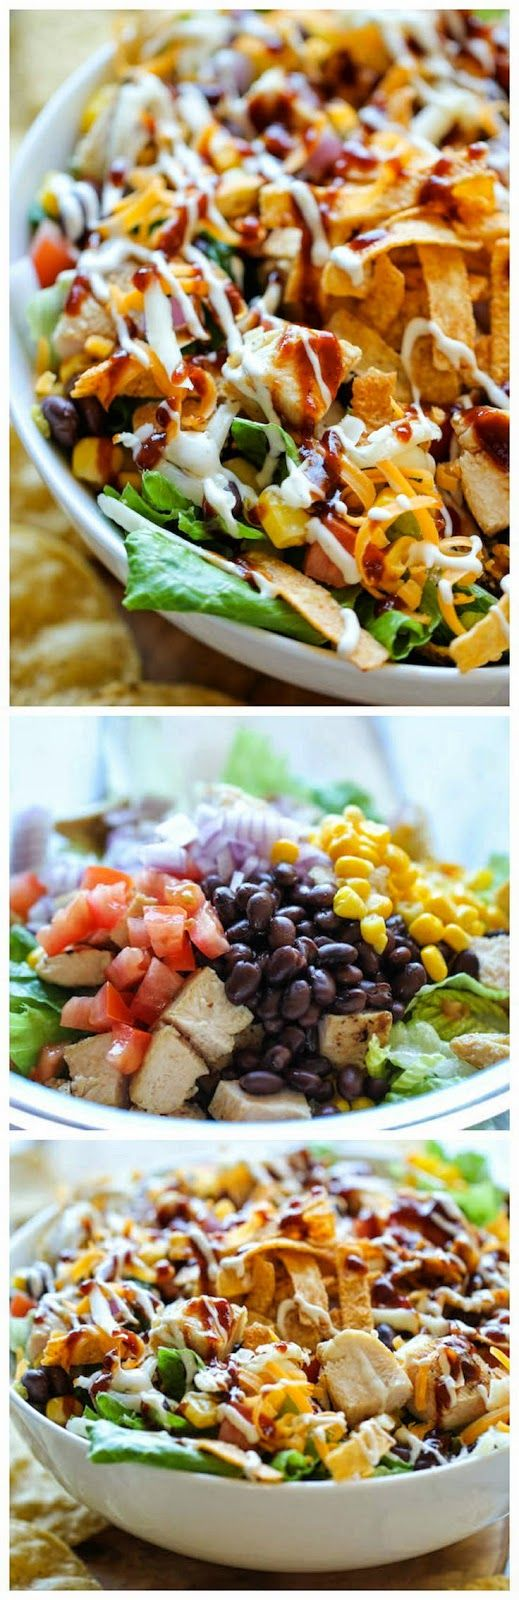 BBQ Chicken Salad - This healthy, flavorful salad comes together so quickly, and it's guaranteed to be a hit with your entire family!